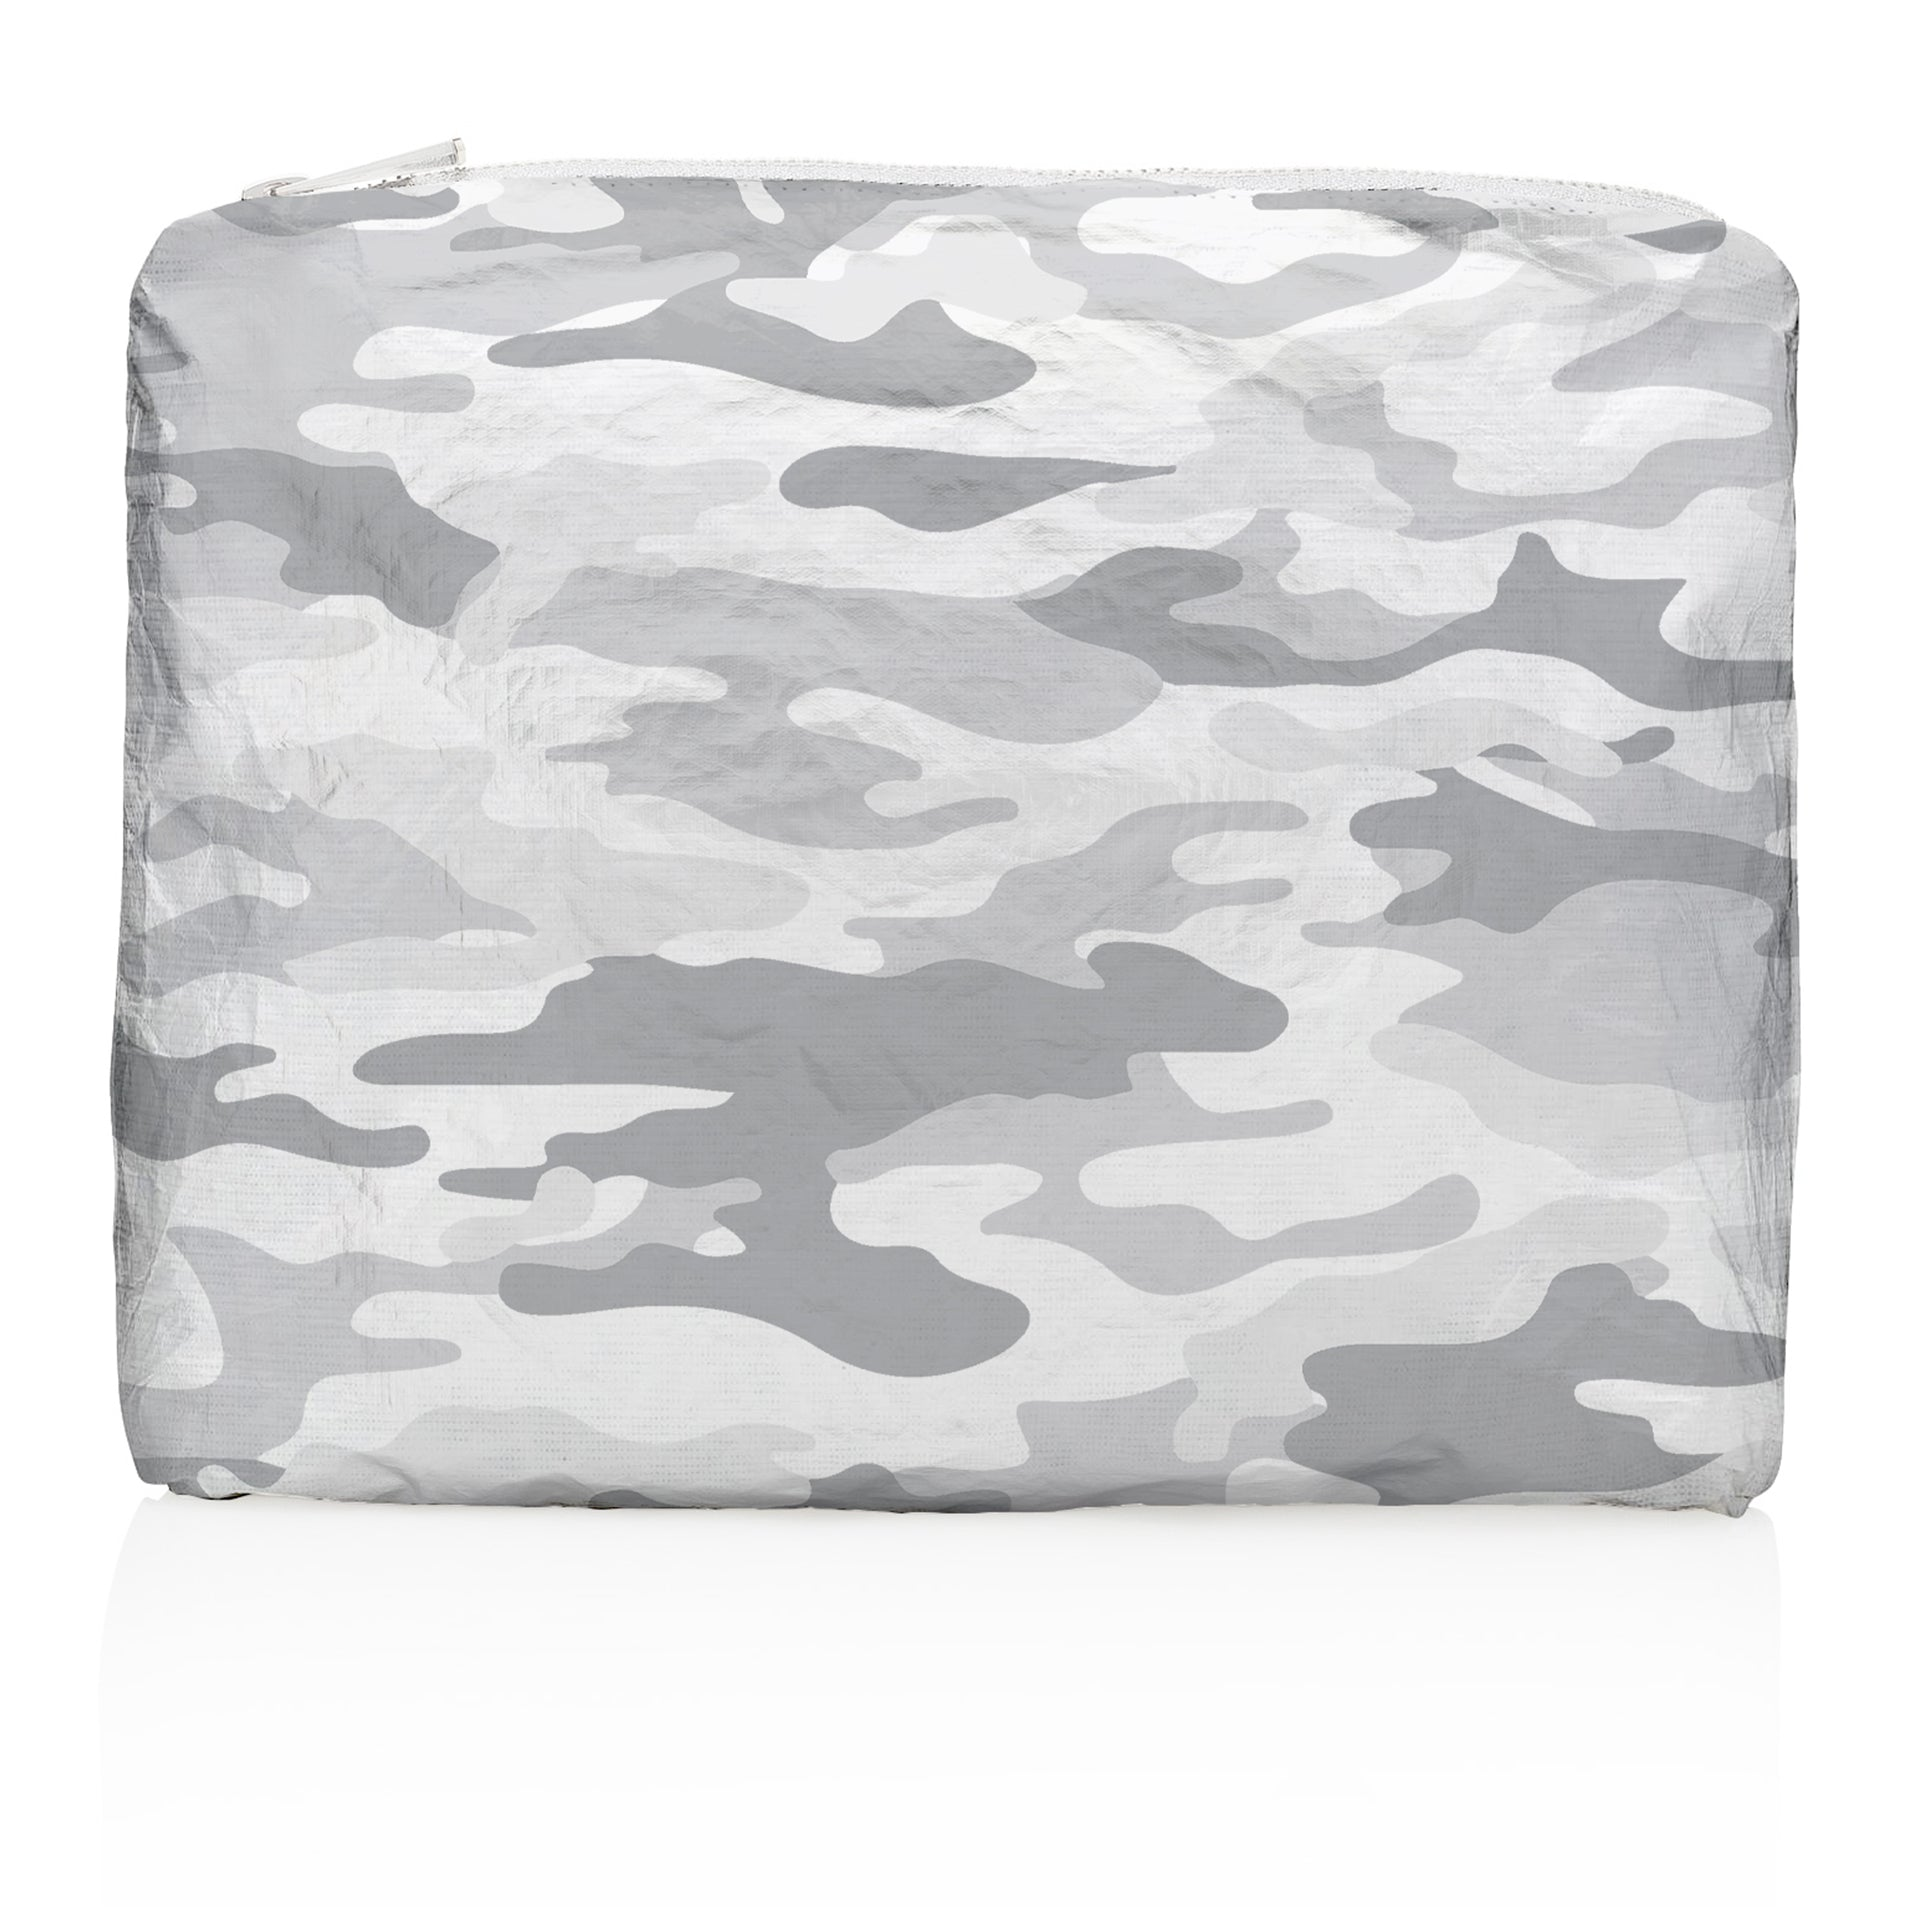 Camo Travel Bag - Camo Makeup Bag - Medium Pack - Metallic Silver Camo